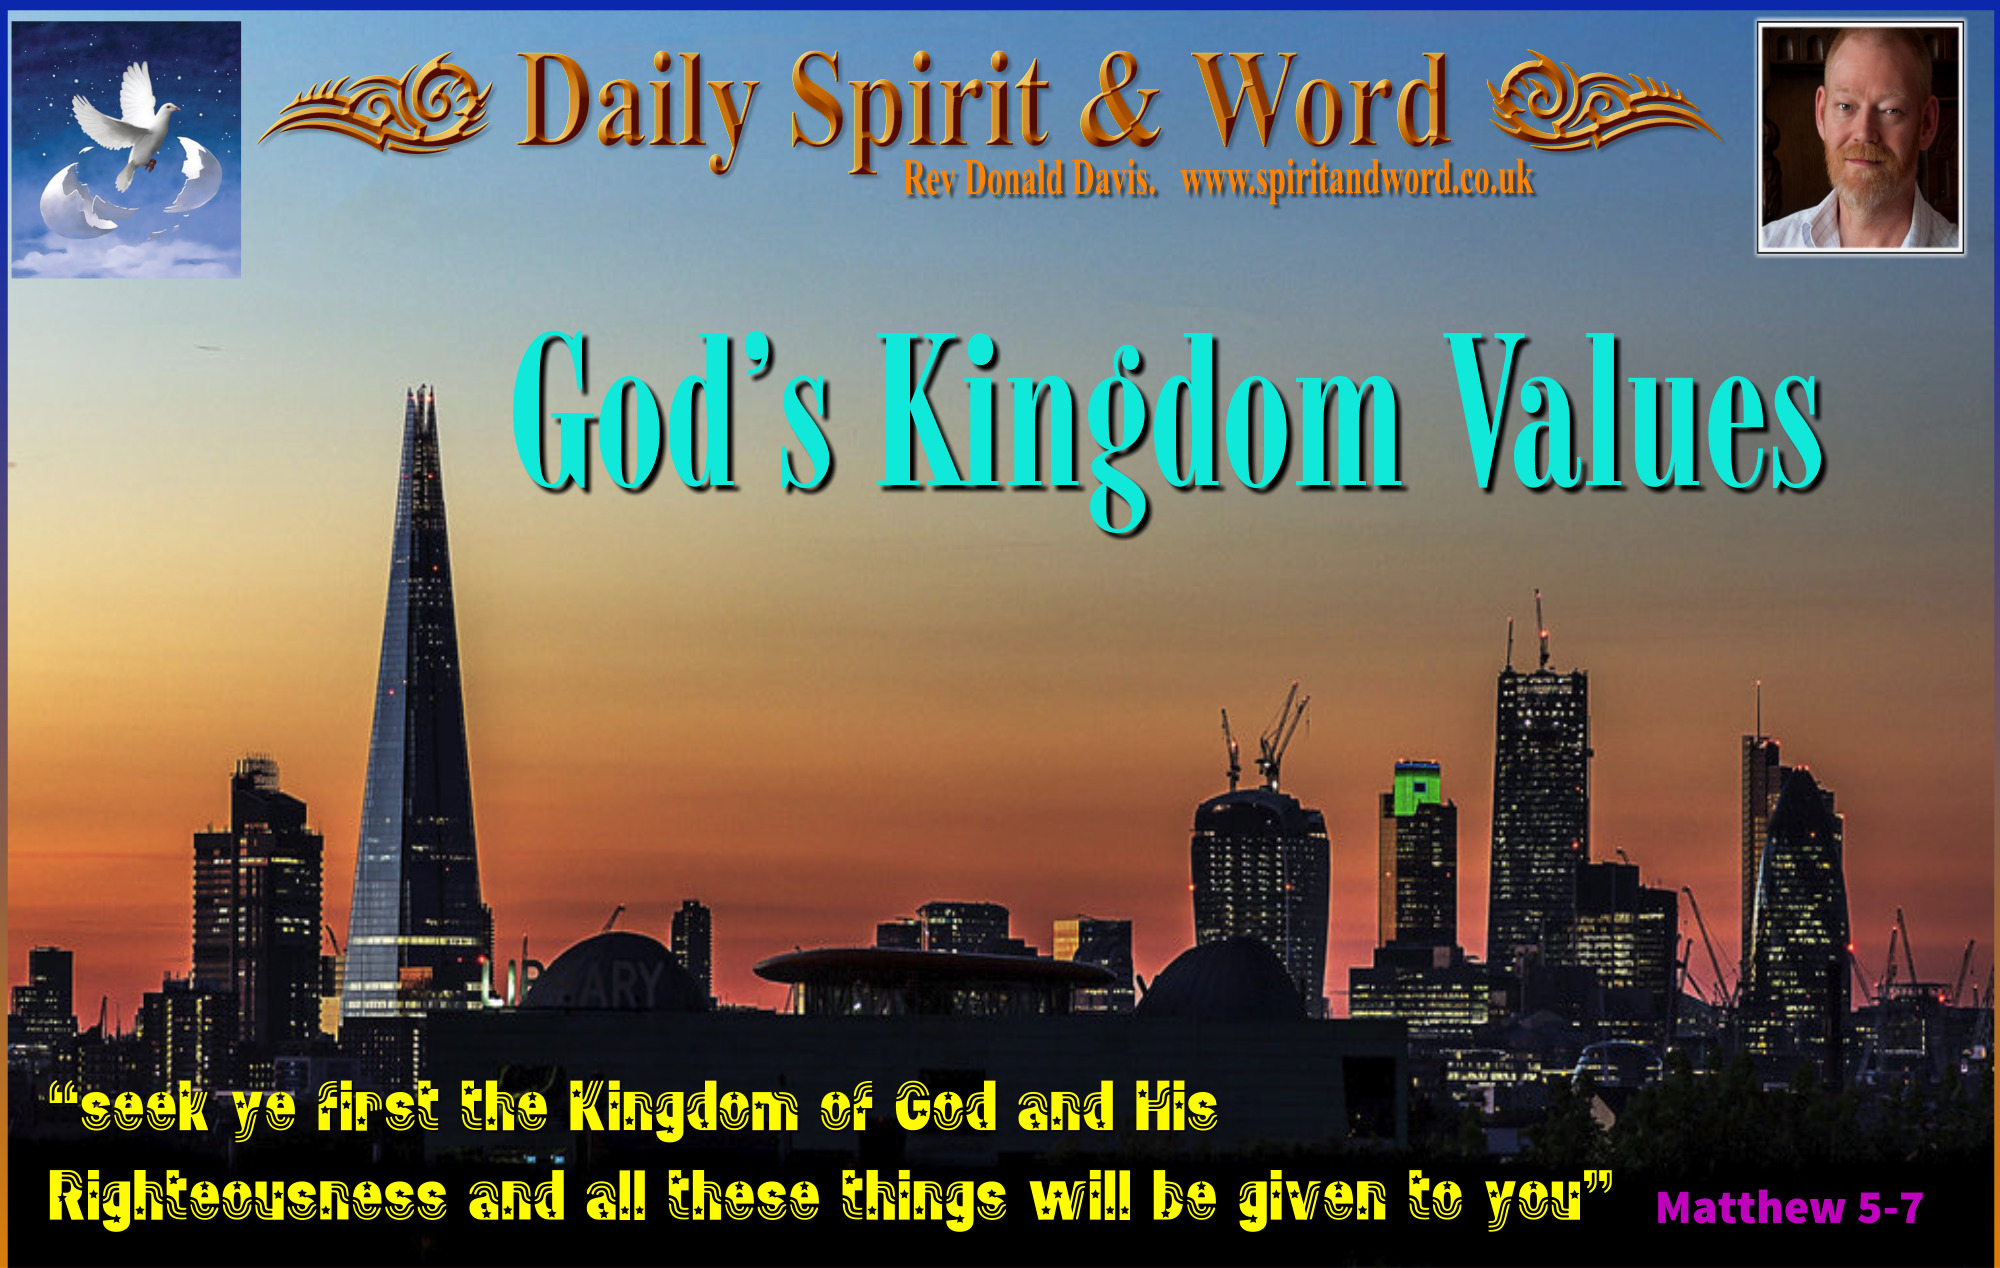 Seek ye first the Kingdom of God and His righteousness